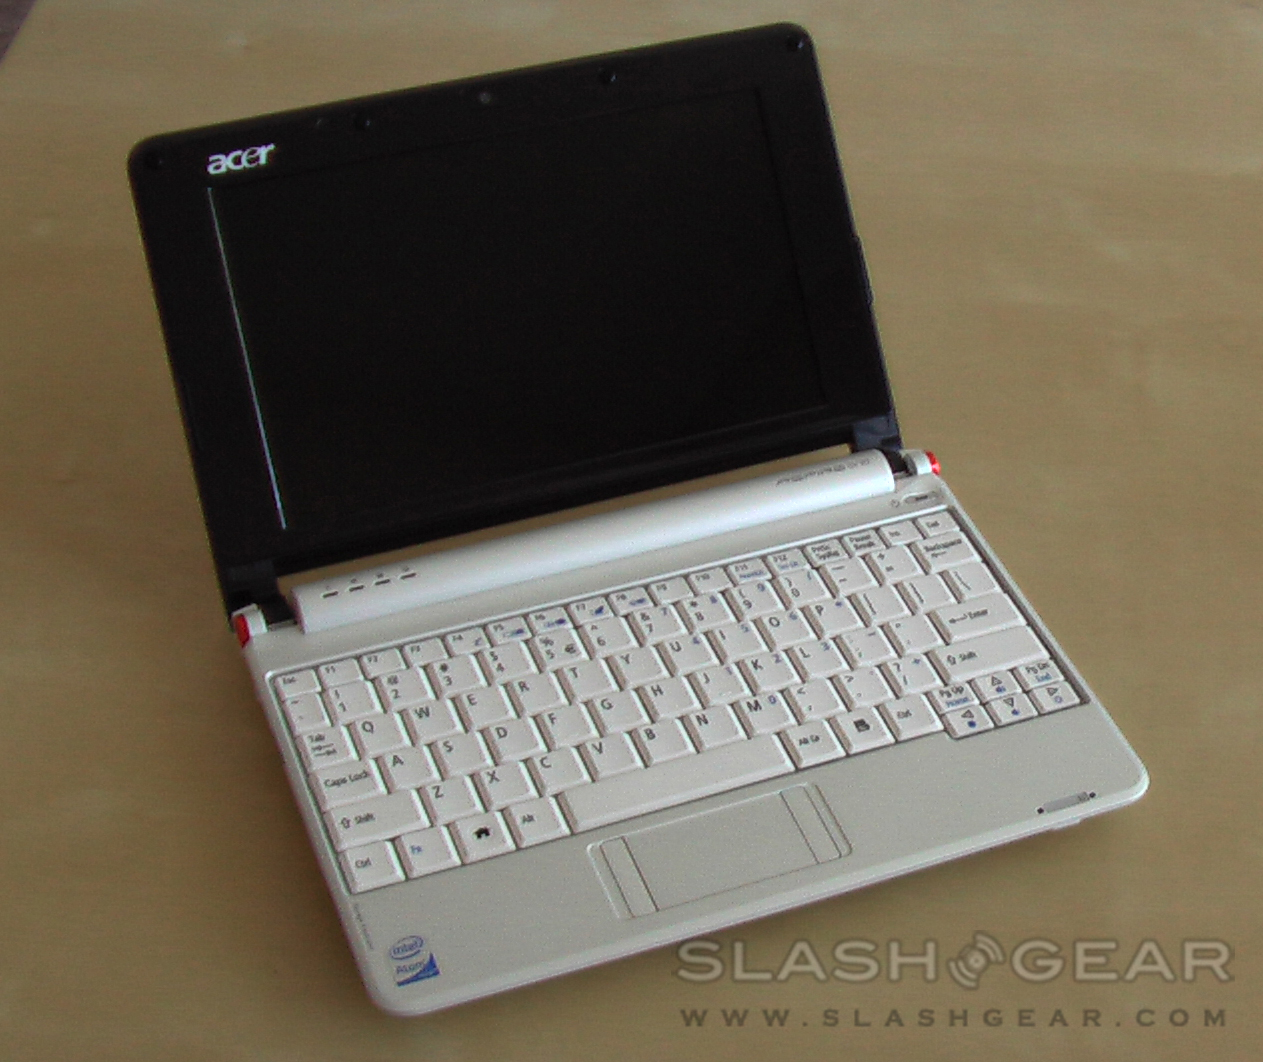 Acer Aspire One netbook SlashGear Review